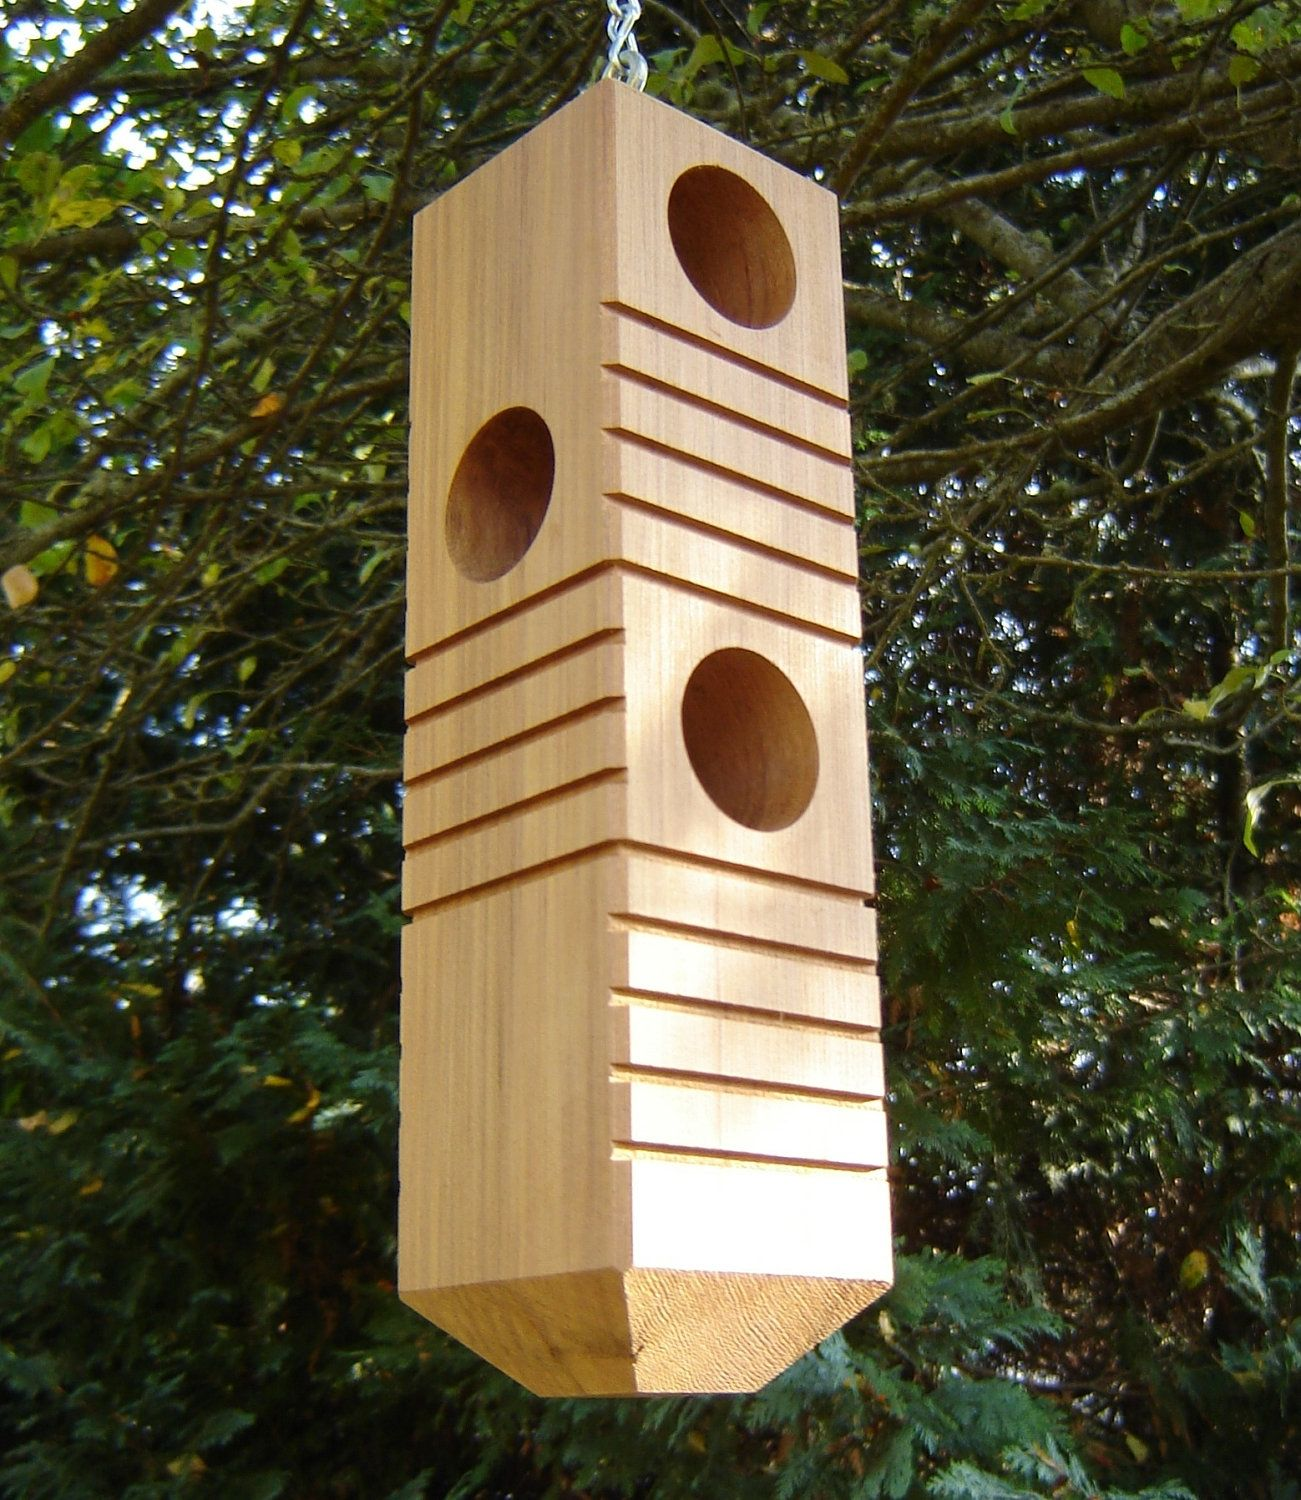 Birdhouse constructed of wood bird house design free standing bird - Awesome Bird Houses Bird Cages